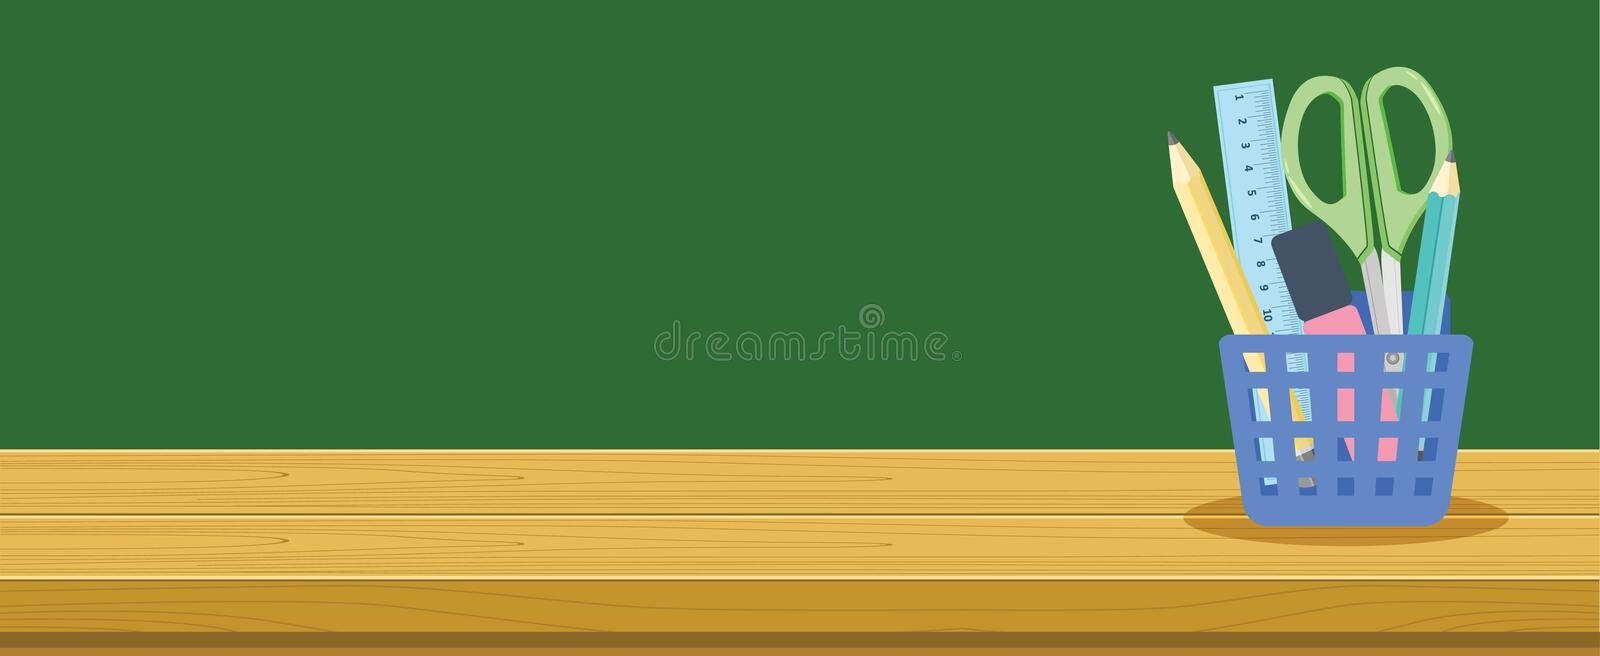 Wooden Desk And Stationery Basket For School Students, Education Background Banner Concept royalty free illustration